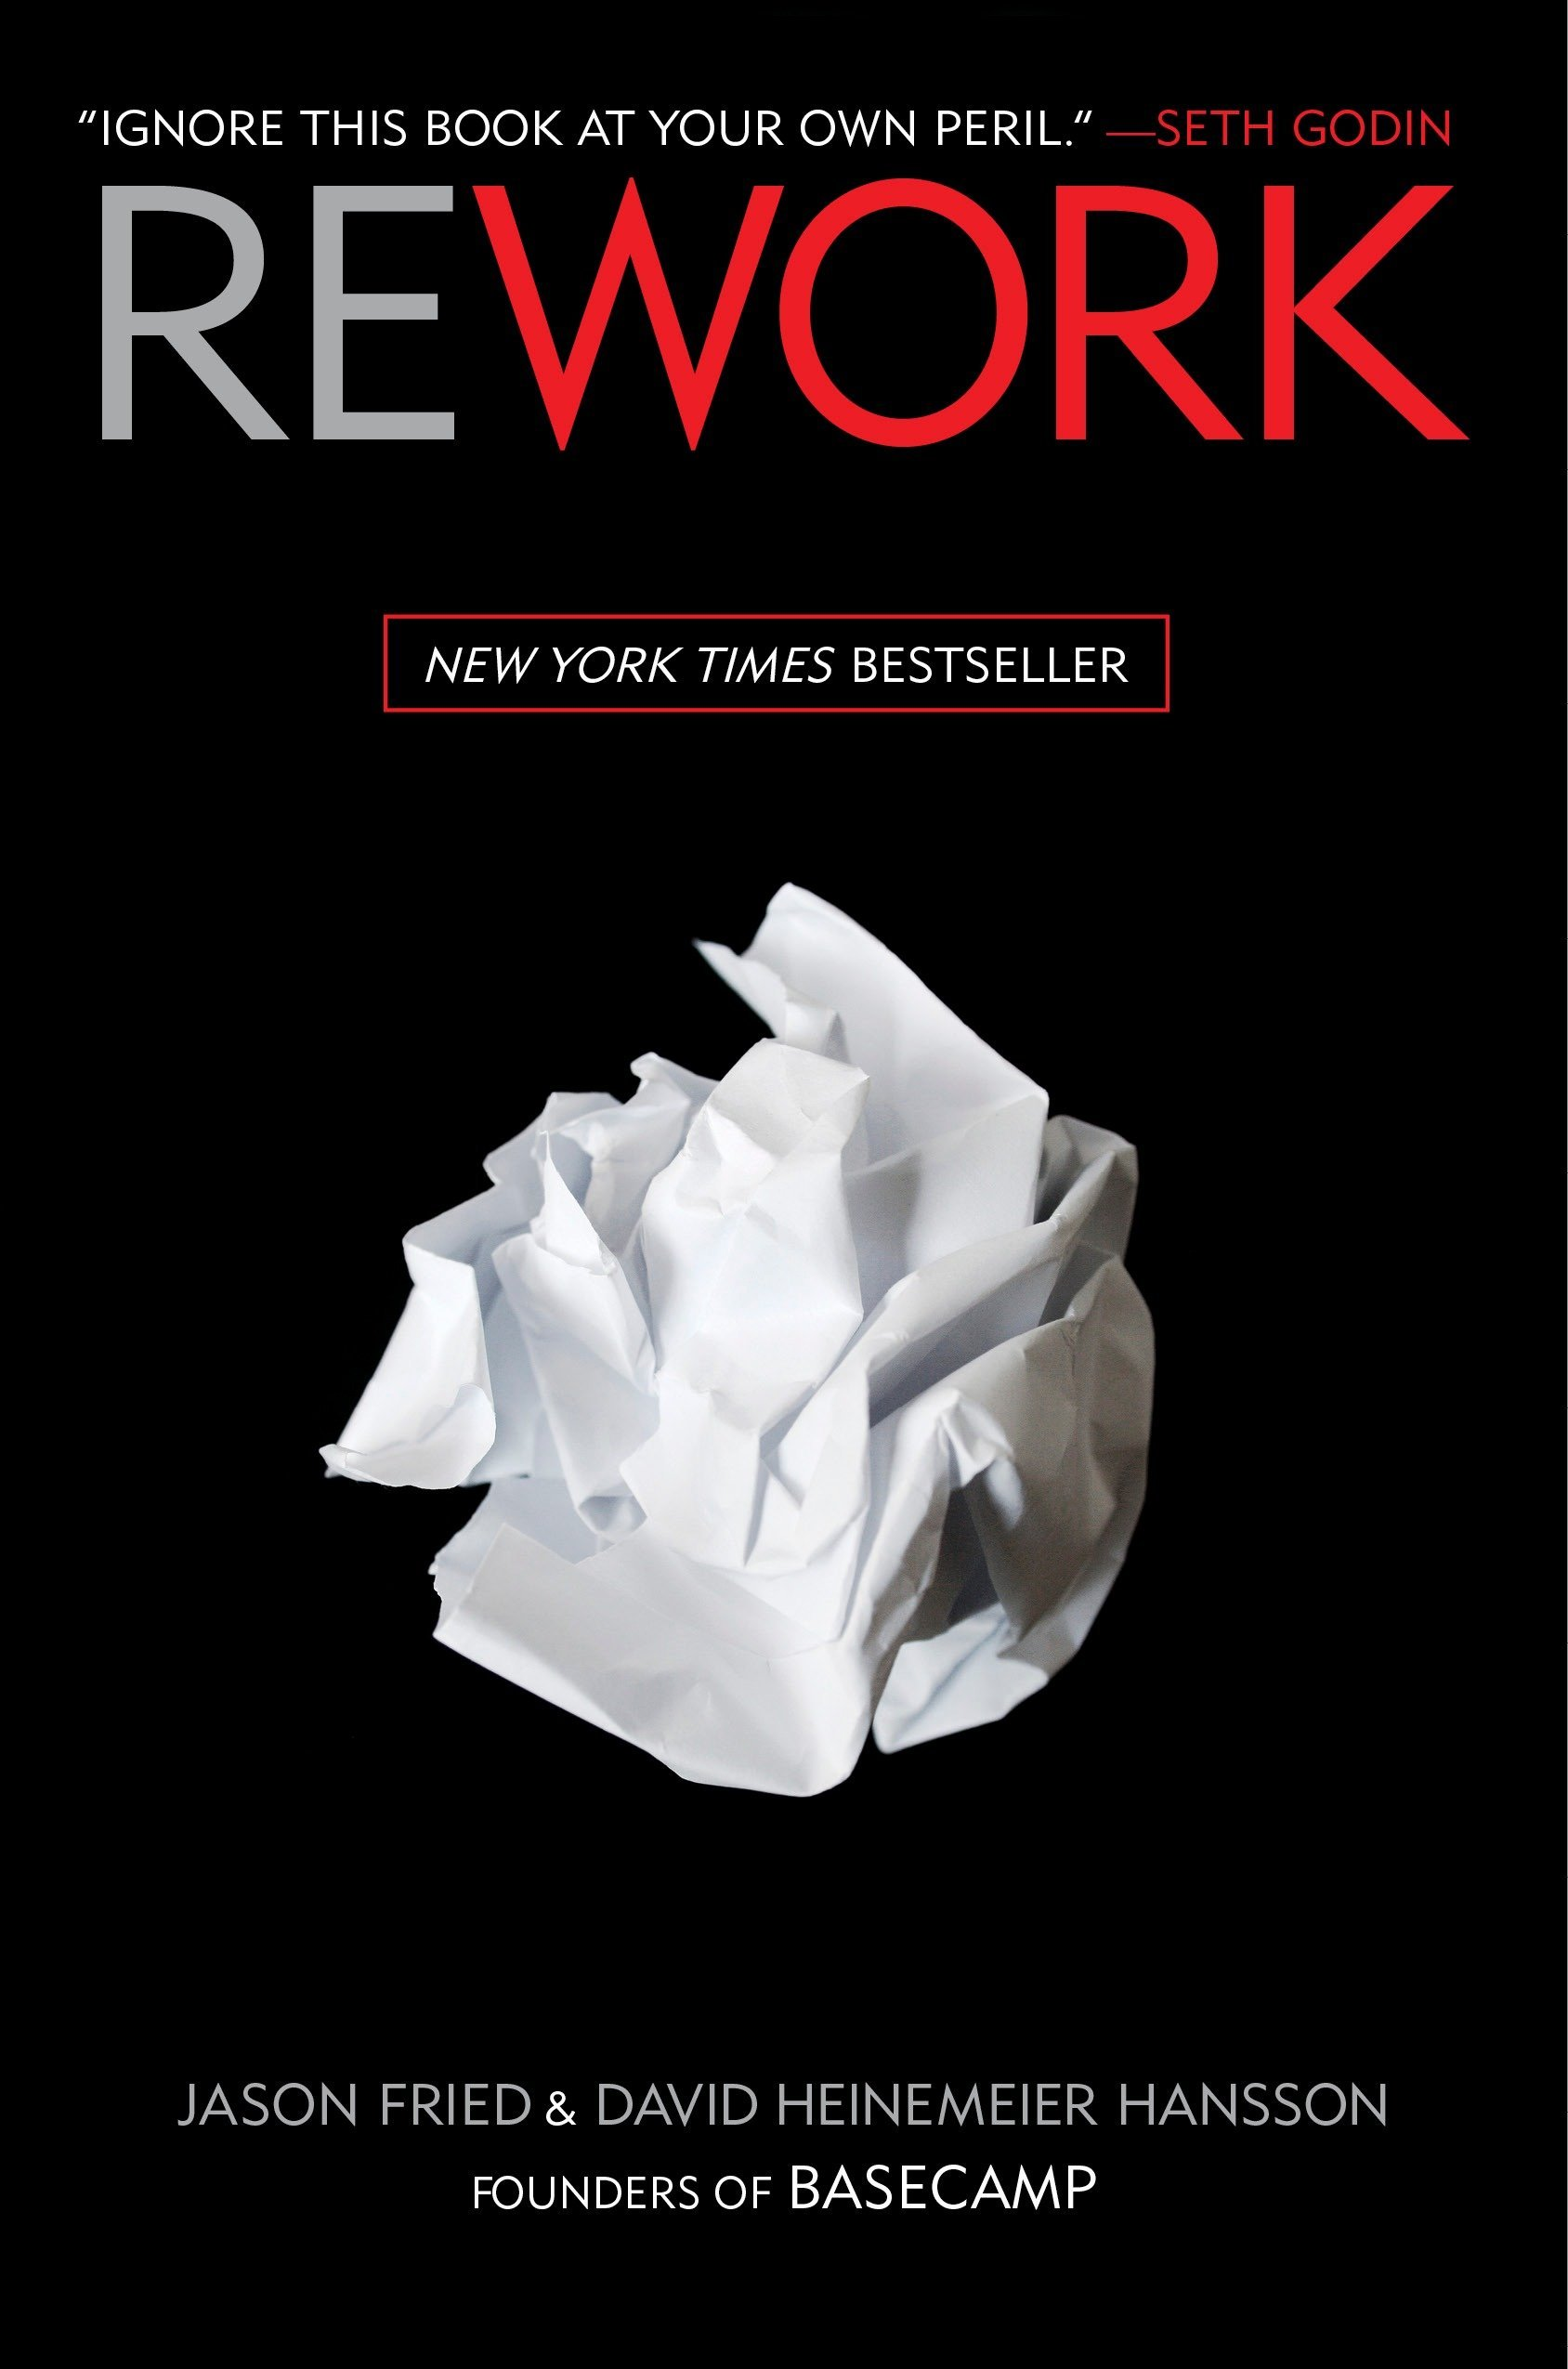 ReWork (Jason Fried & David Heinemeier Hansson)